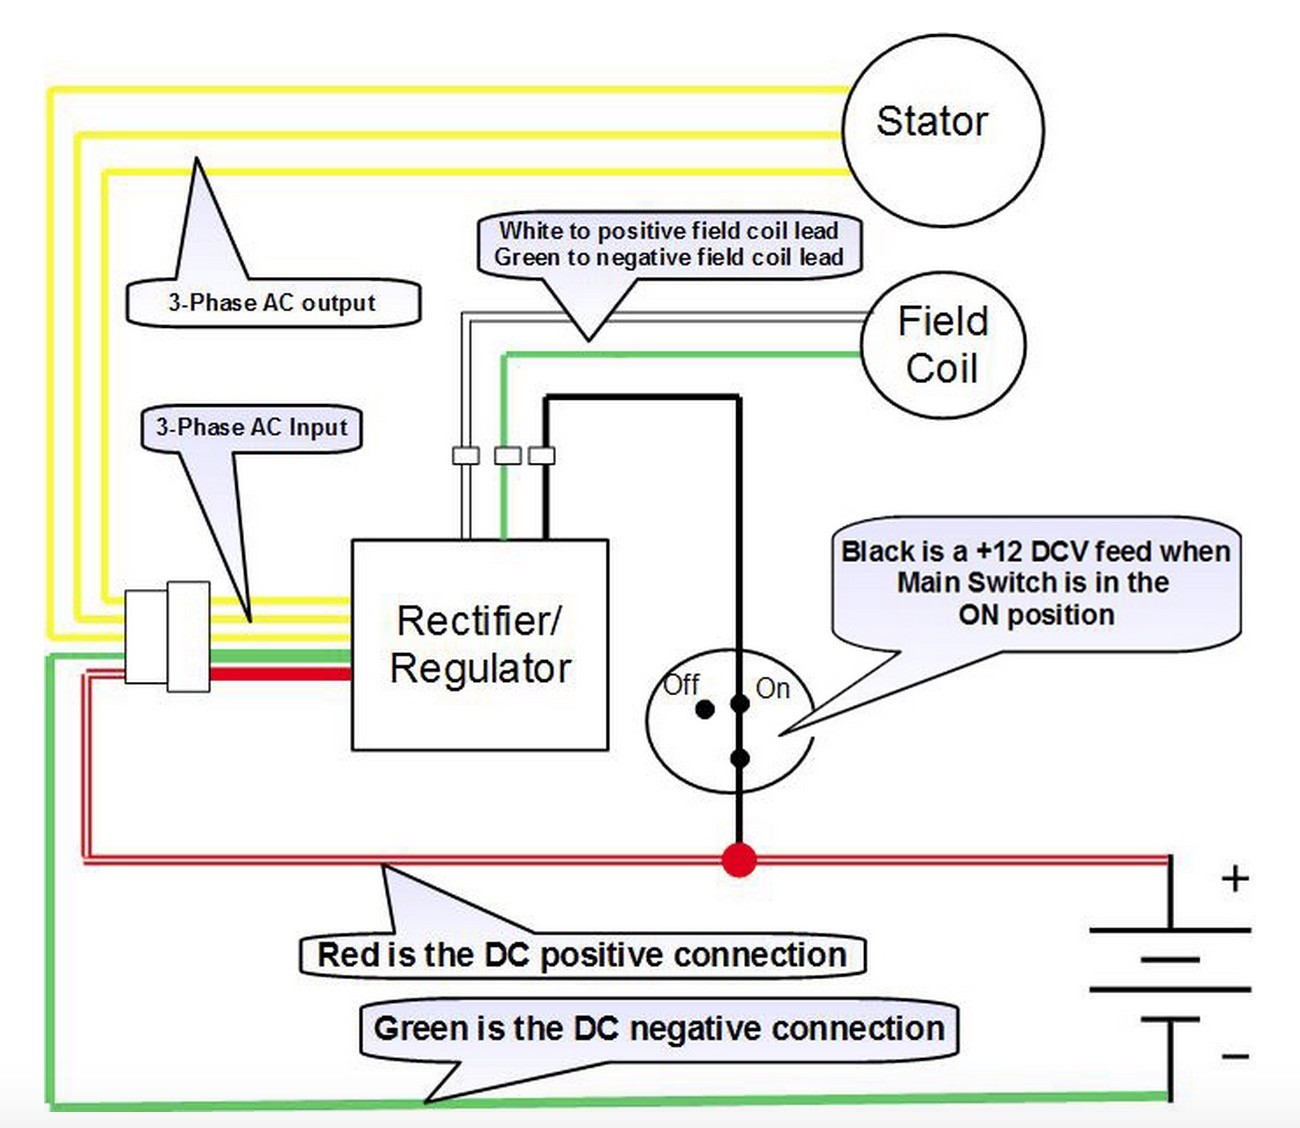 Harley Davidson Voltage Regulator Diagram Detailed Wiring Diagrams 2005 Image Sportster 883